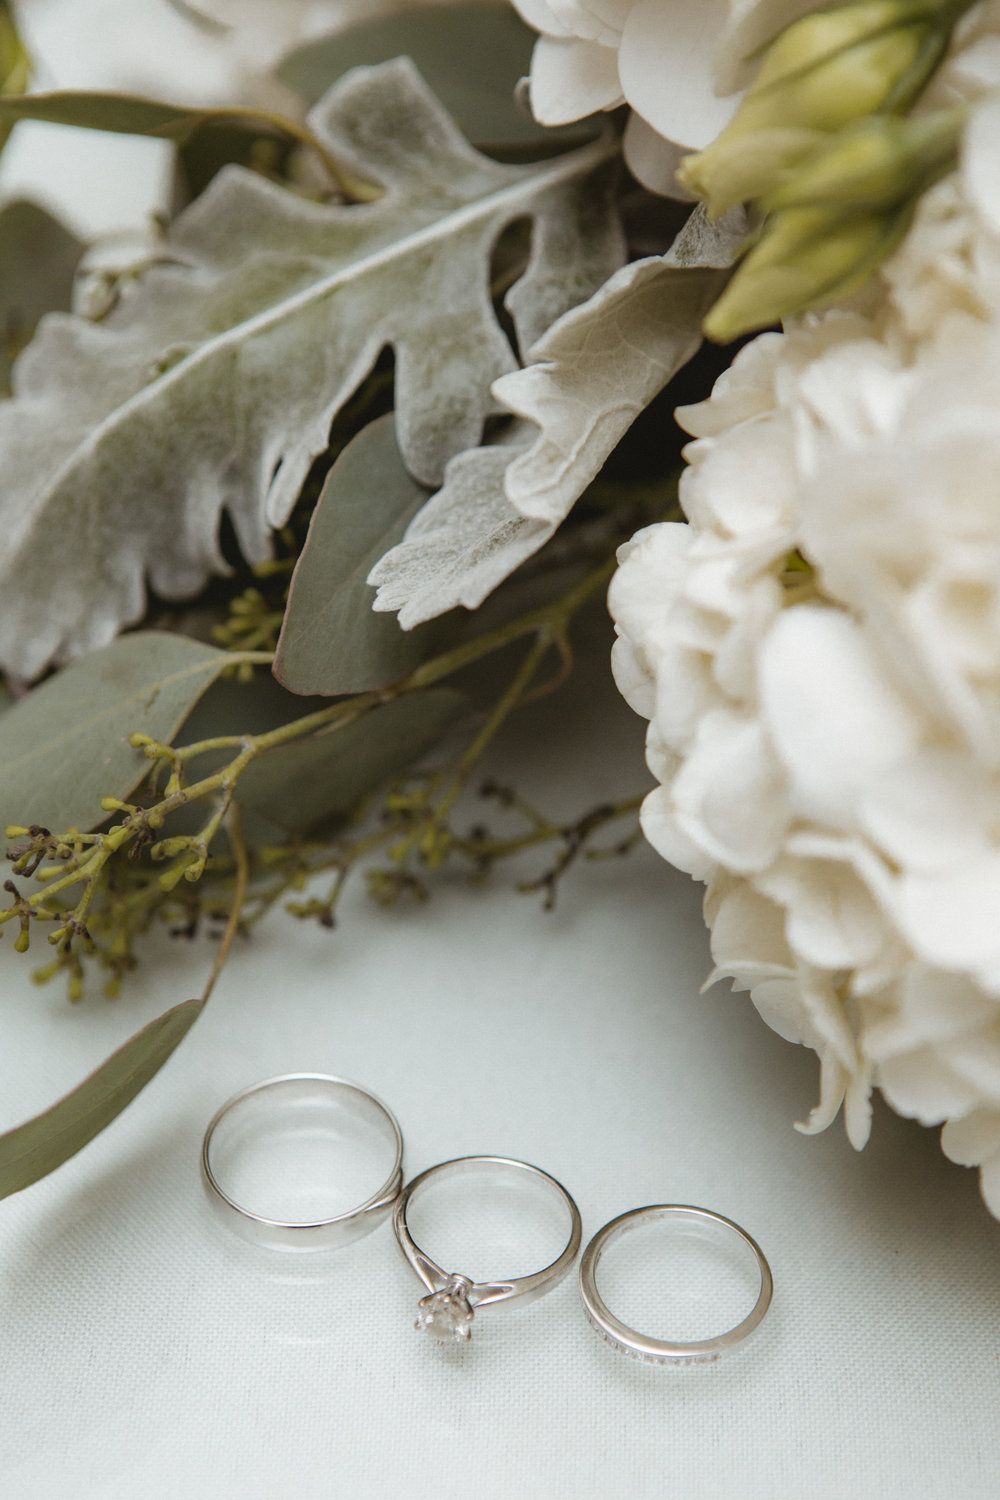 Wedding rings lay next to floral details - New Rochelle wedding - New York wedding - Hudson Valley wedding - Heather & Ian's wedding - Amy Sims Photography